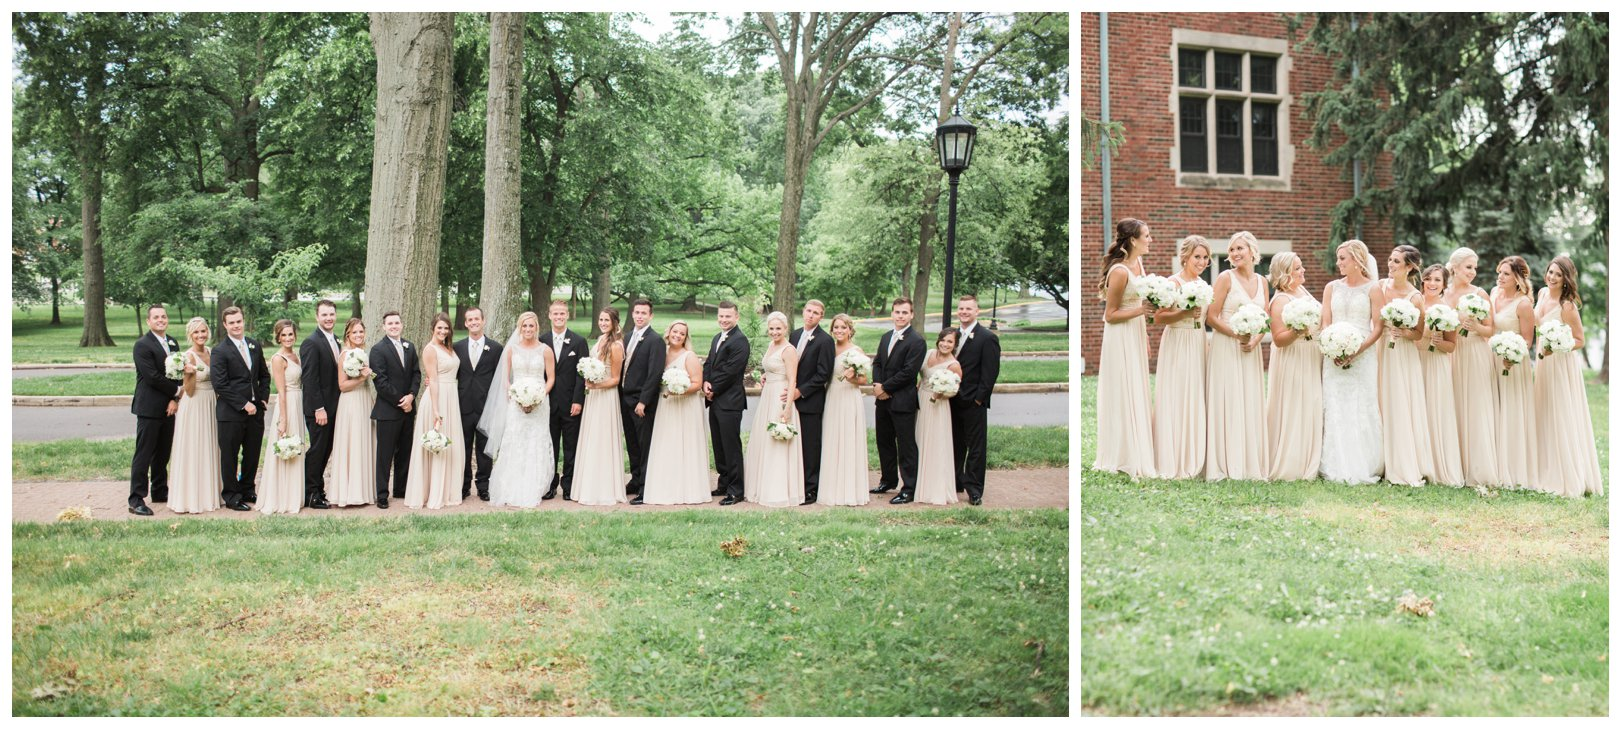 lauren muckler photography_fine art film wedding photography_st louis_photography_1072.jpg